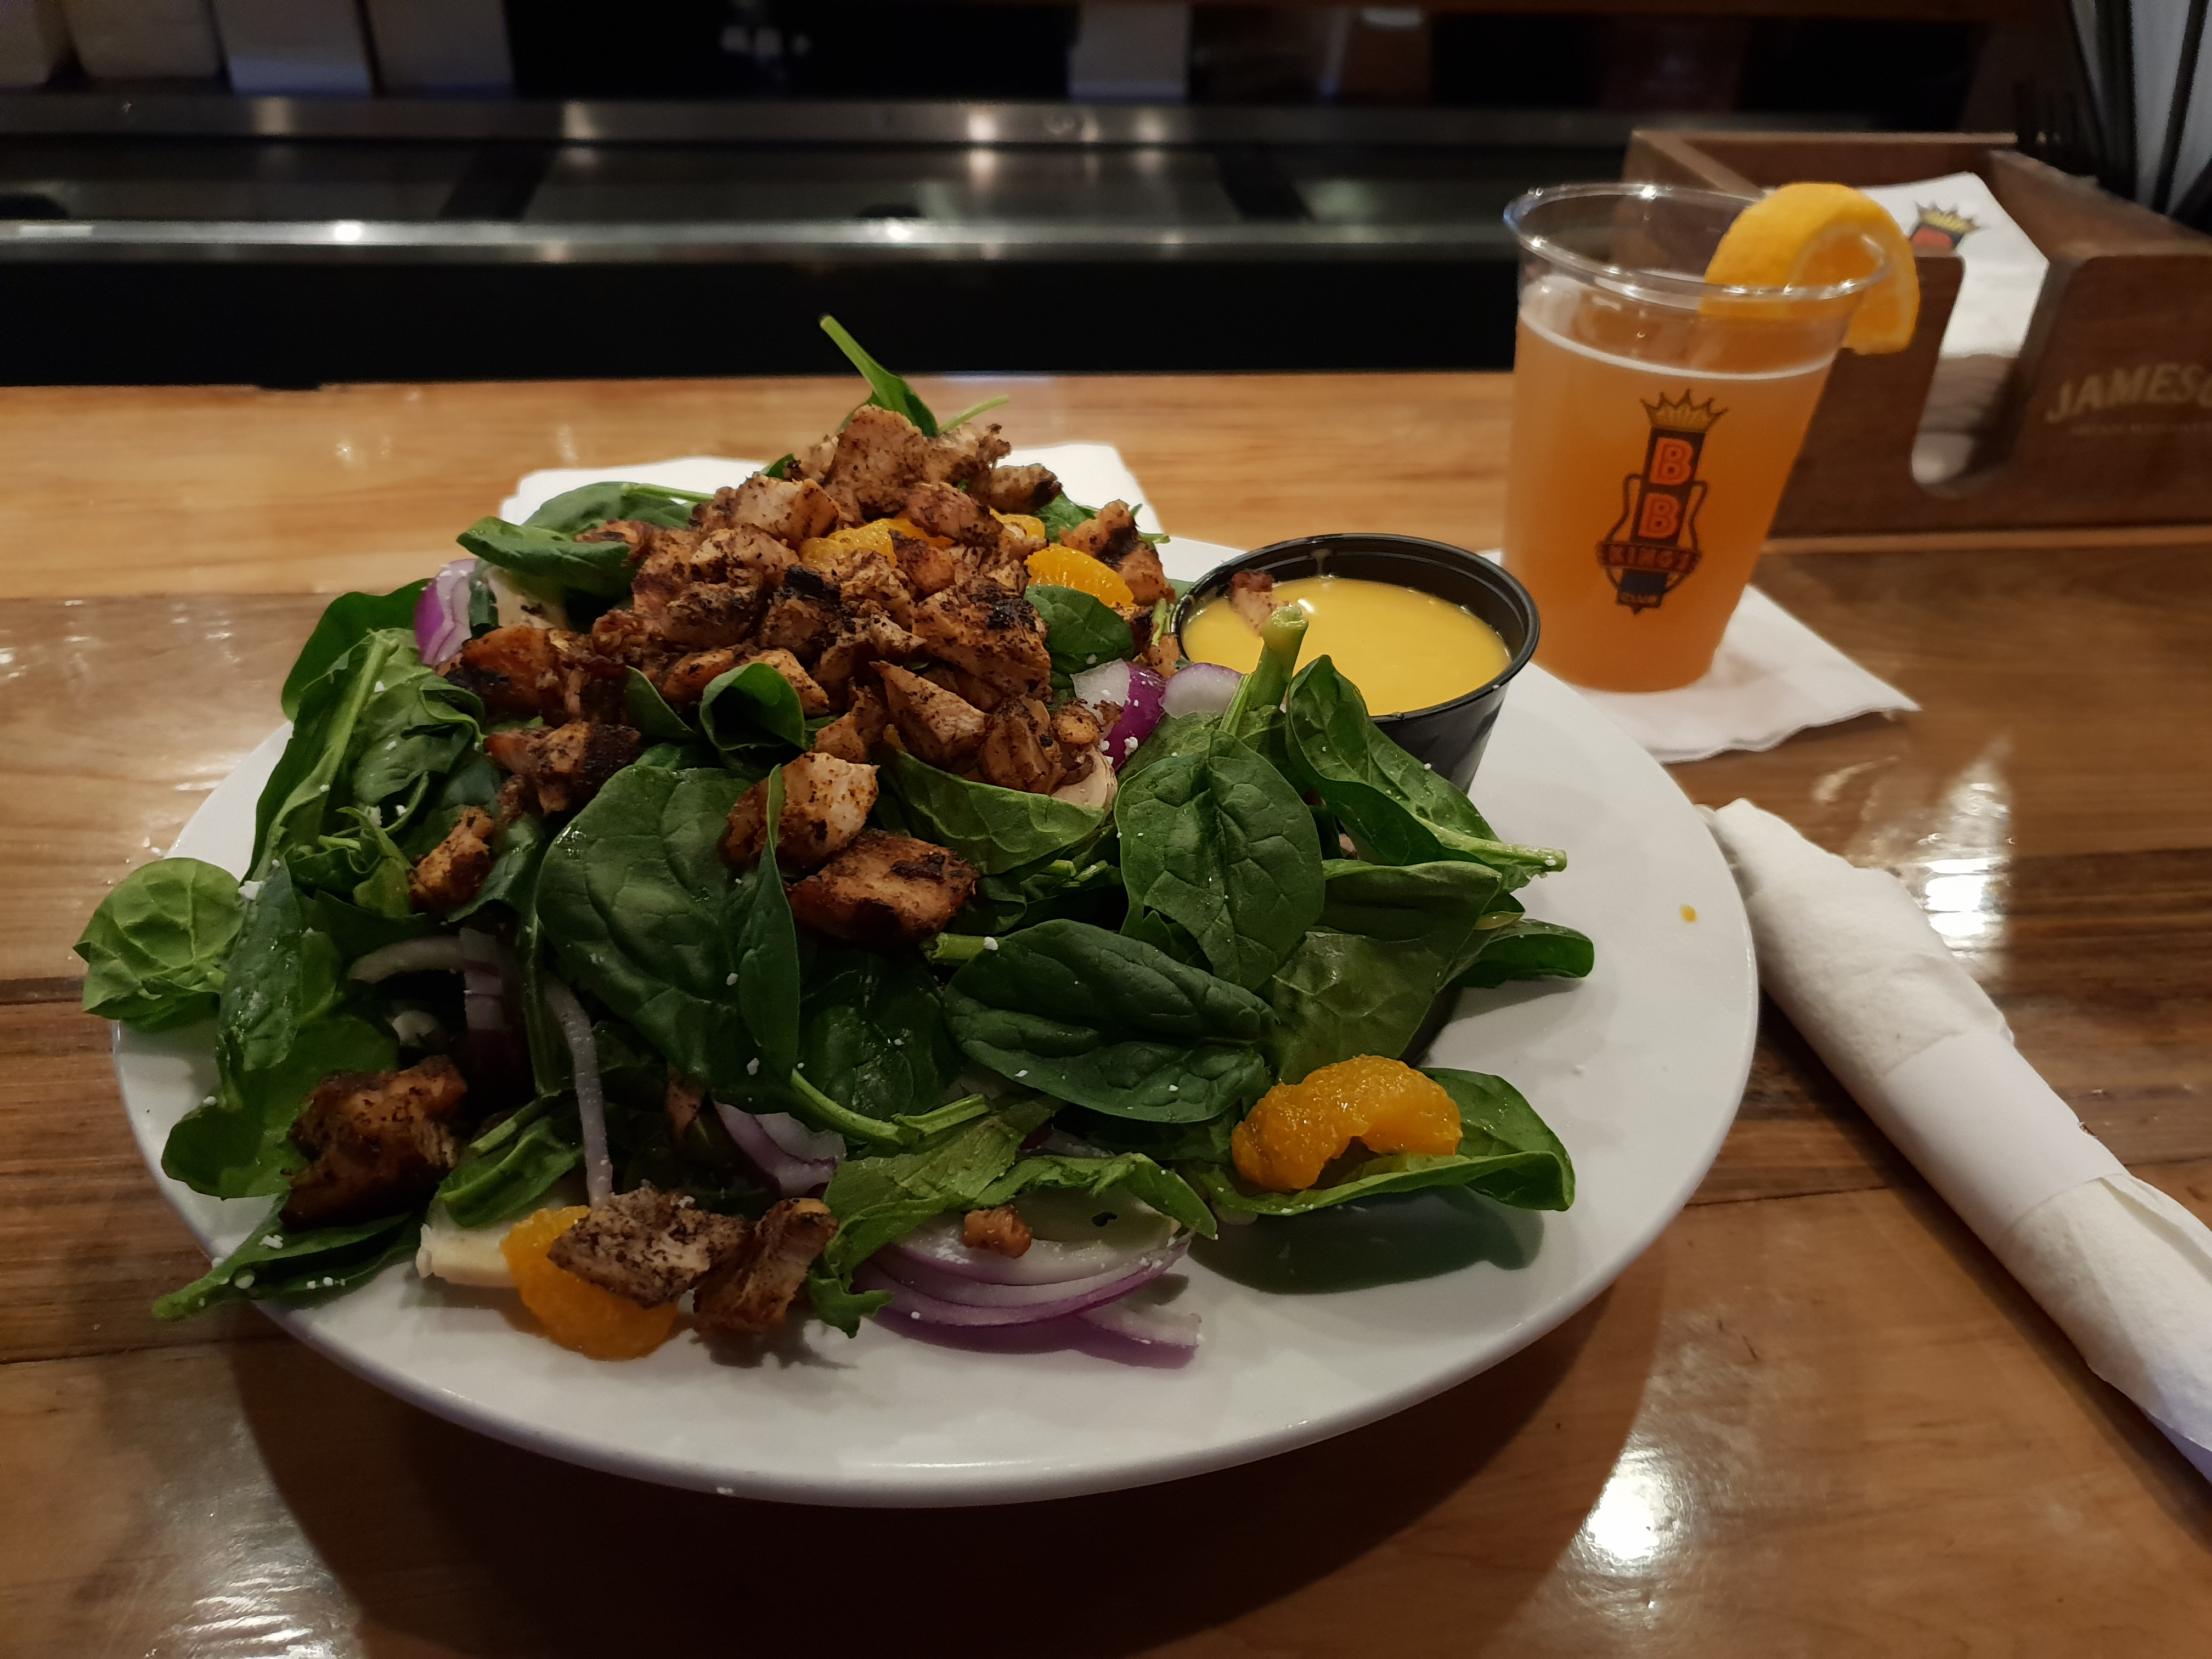 BB King's Club Spinach Salad with Blackened Chicken